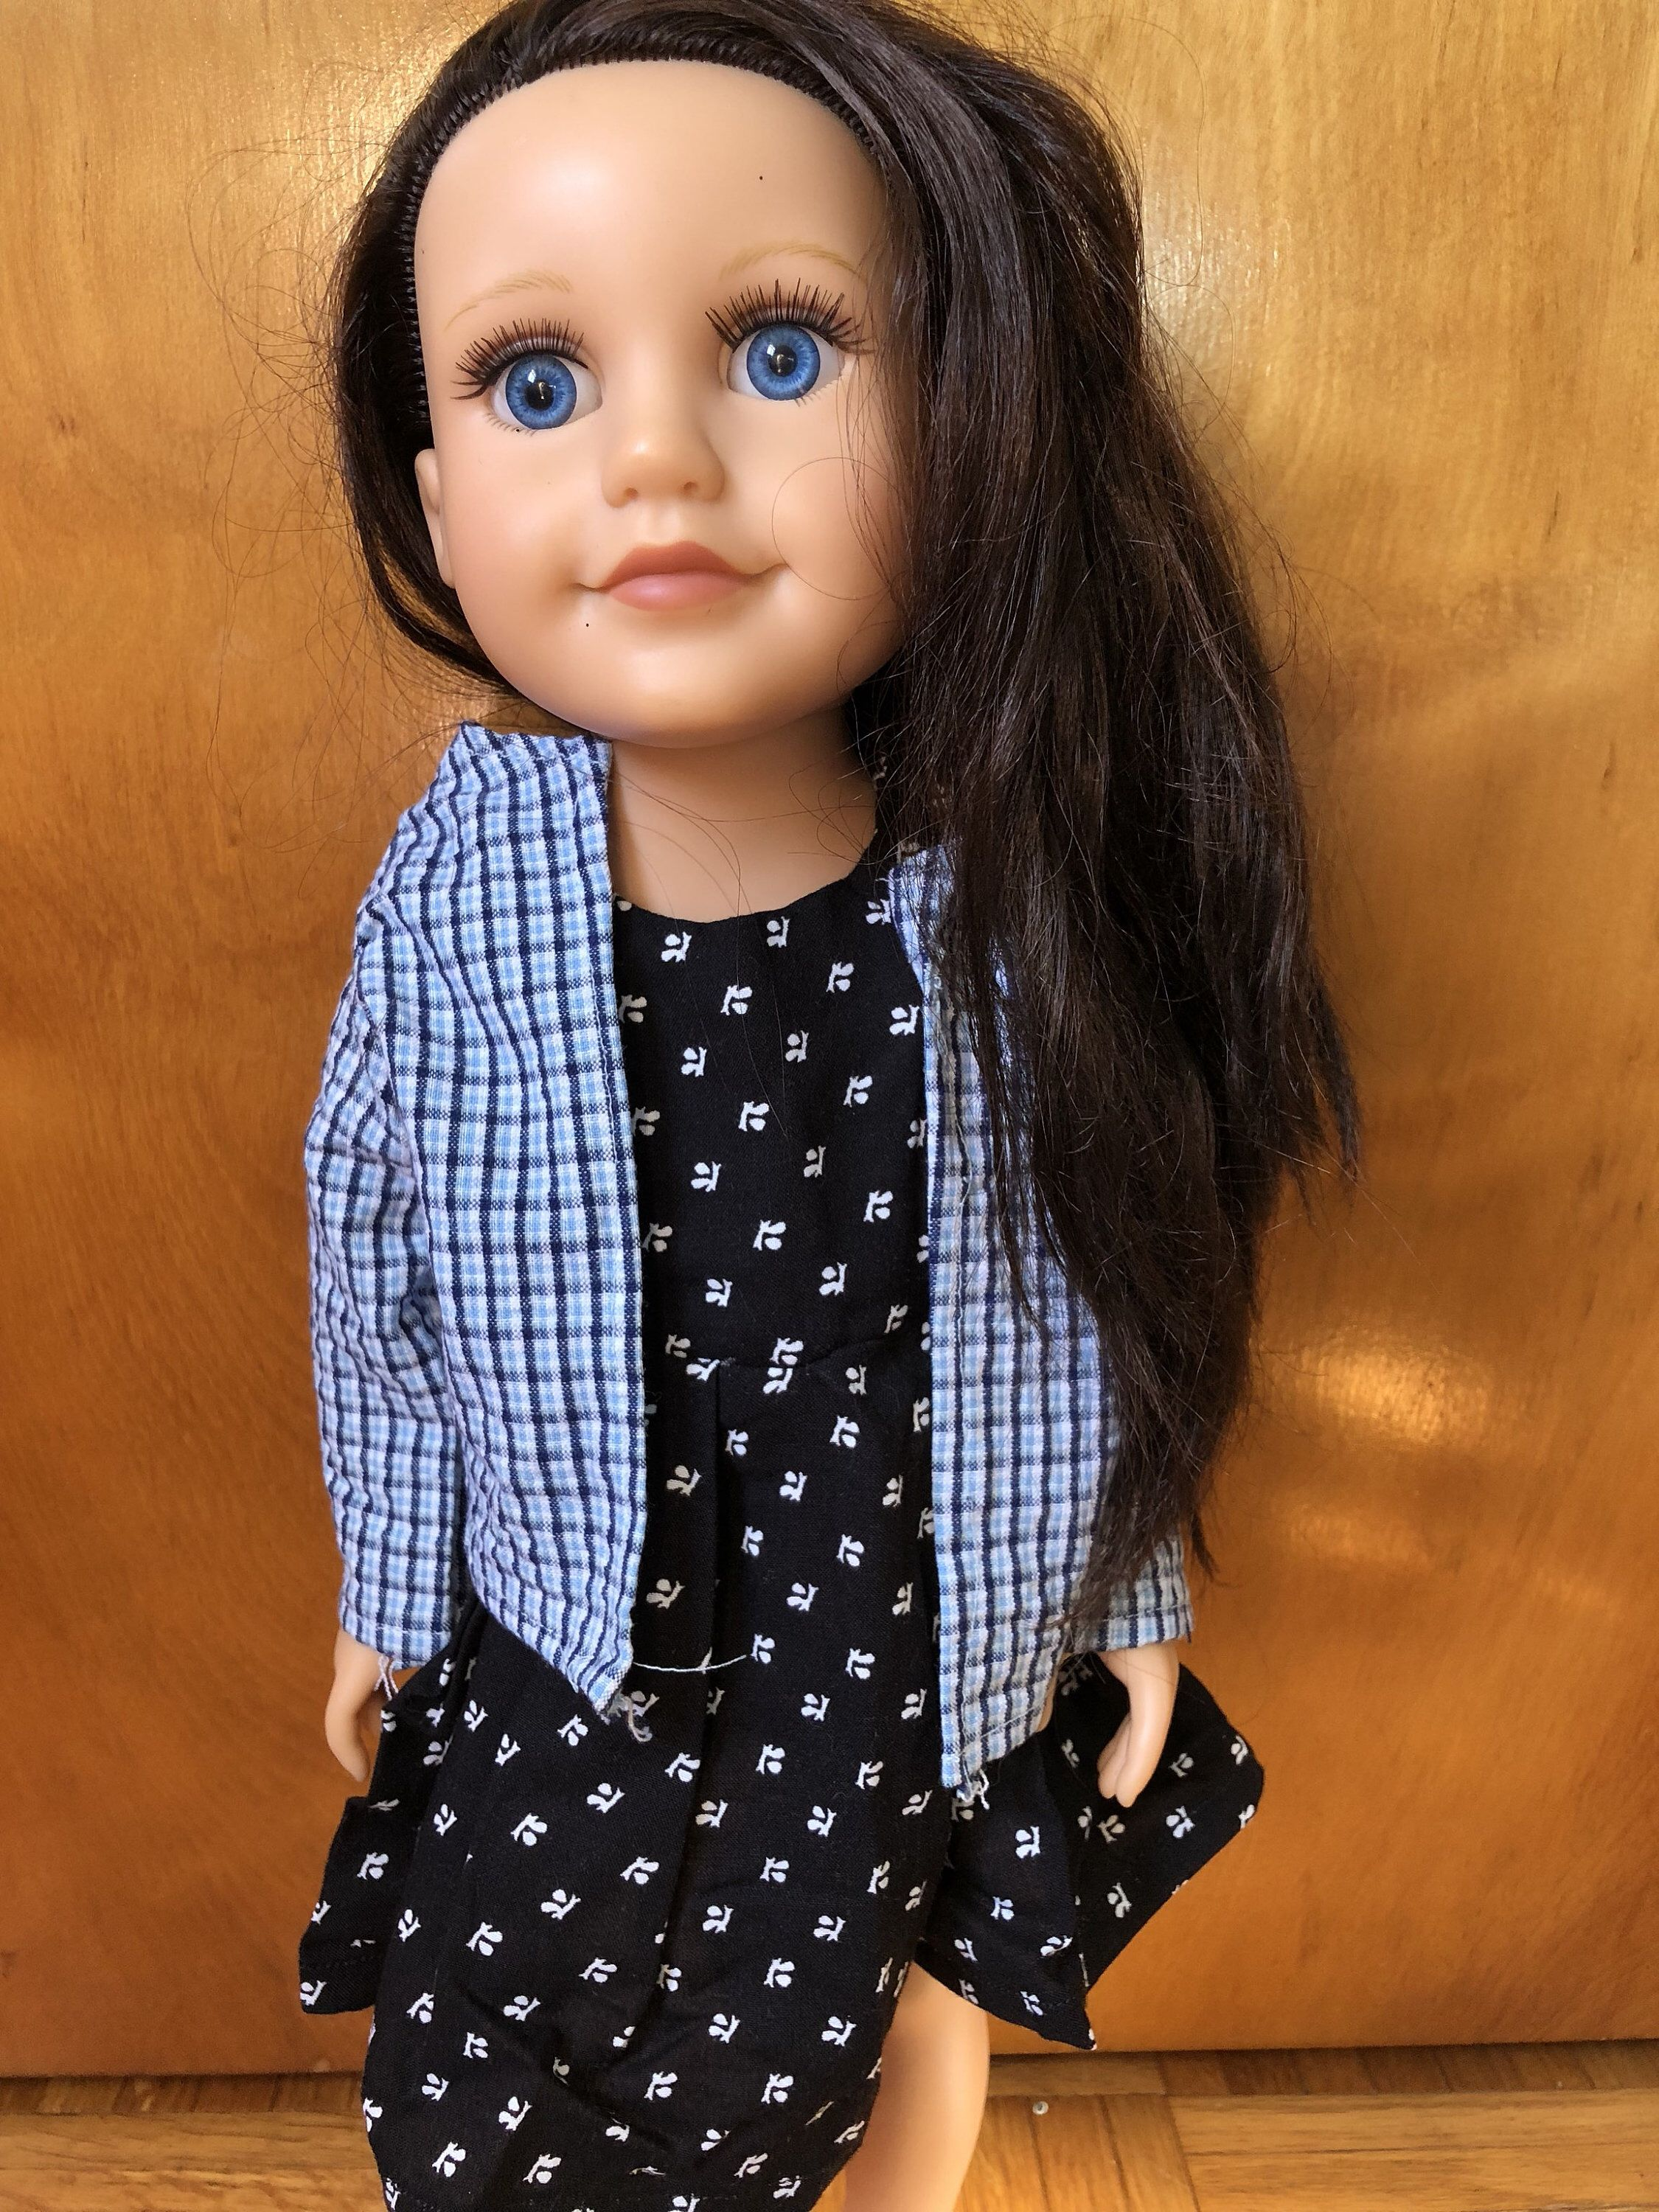 blue flannel shirt, american girl long sleeve shirt/ american girl doll shirts/ 18 inch doll shirt/ checkered shirt/ 18 inch doll clothes #18inchdollsandclothes